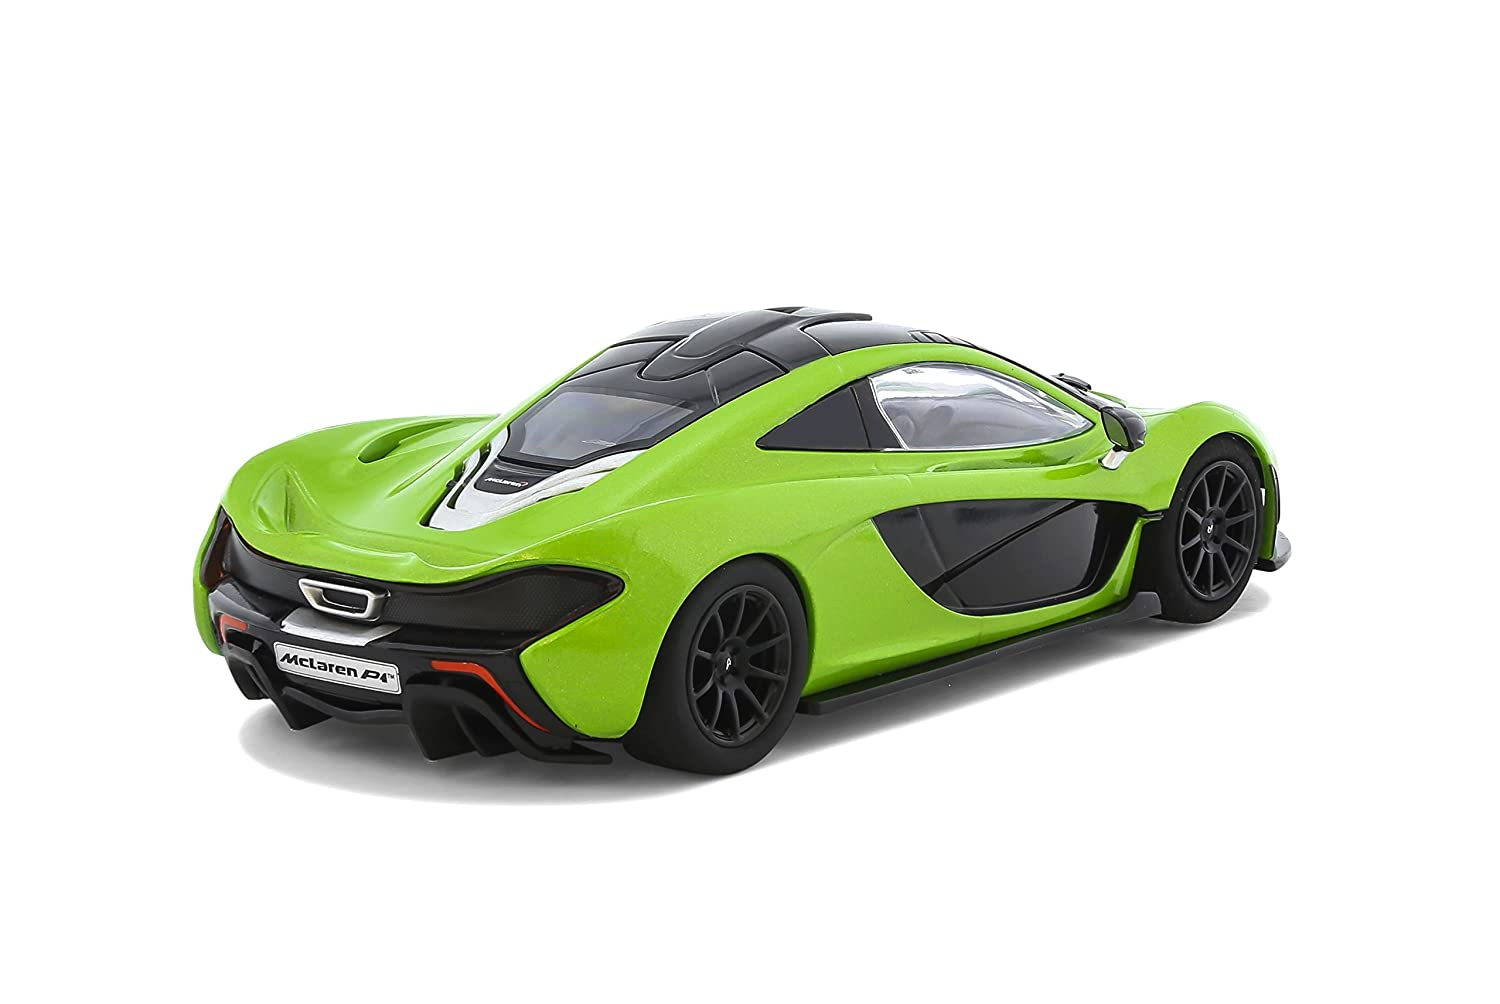 Beautiful Amazon.com: Scalextric C3756 McLaren P1 Lime Green Slot Car (1:32 Scale):  Toys U0026 Games